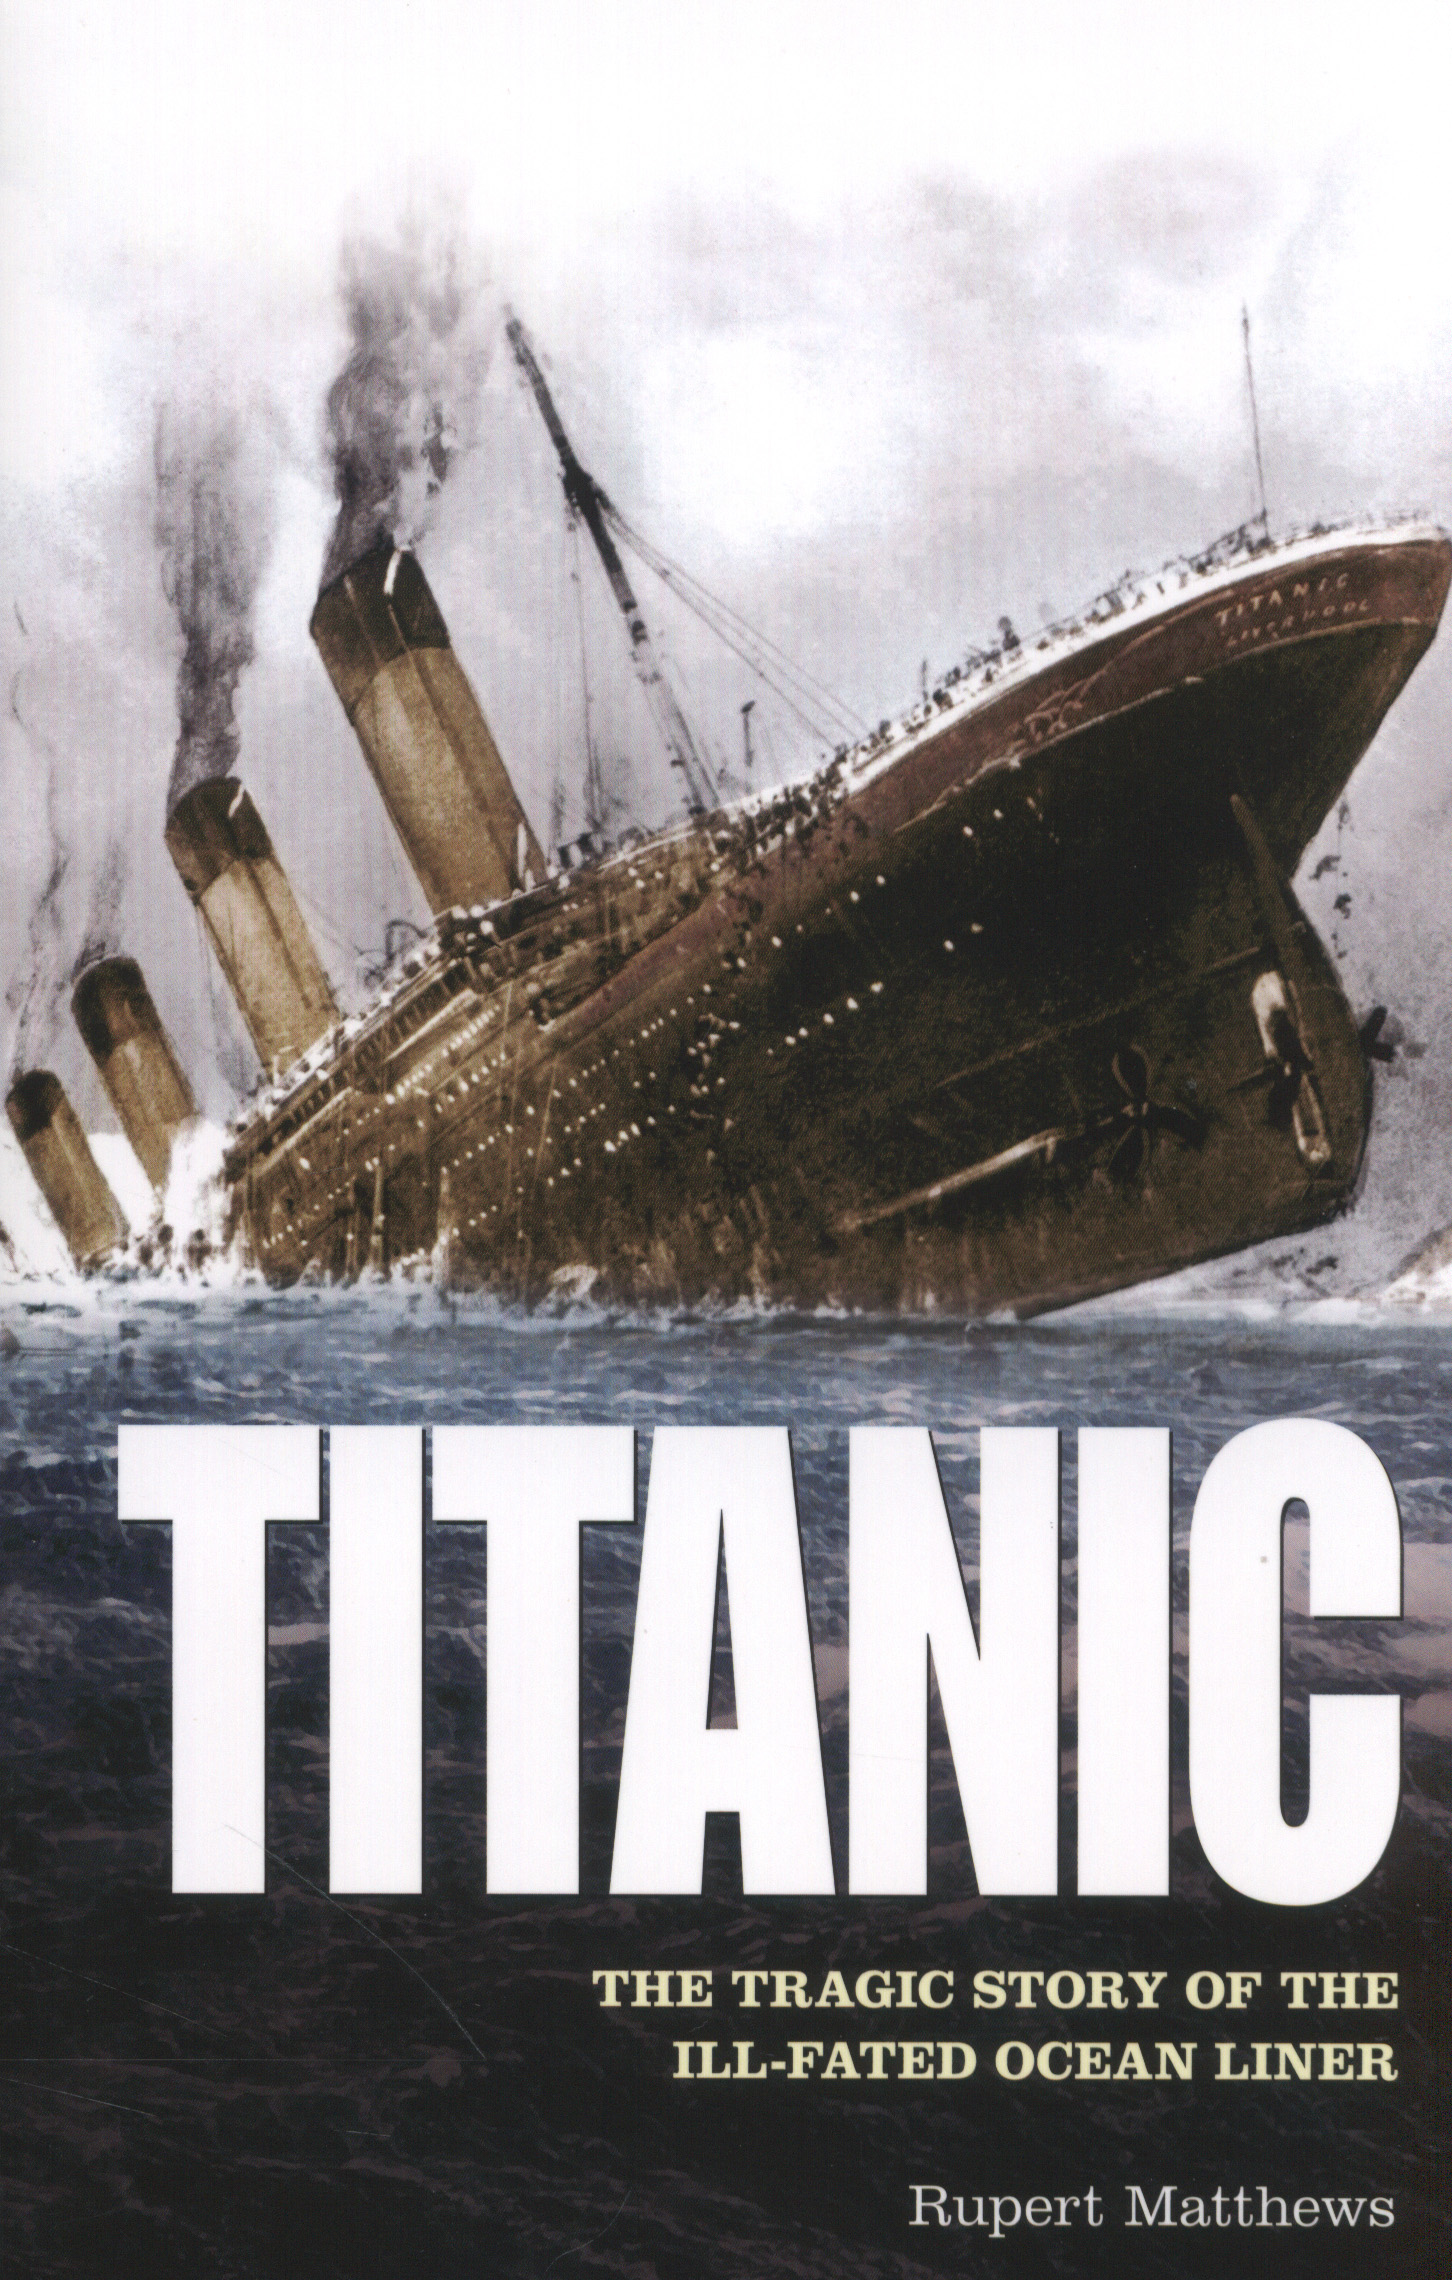 an introduction to the history of the tragedy of titanic The tragedy of the unsinkable titanic - lost in the cold water of the atlantic - became part of history and pop culture, but the story of the main culprit that caused the disaster is mostly.